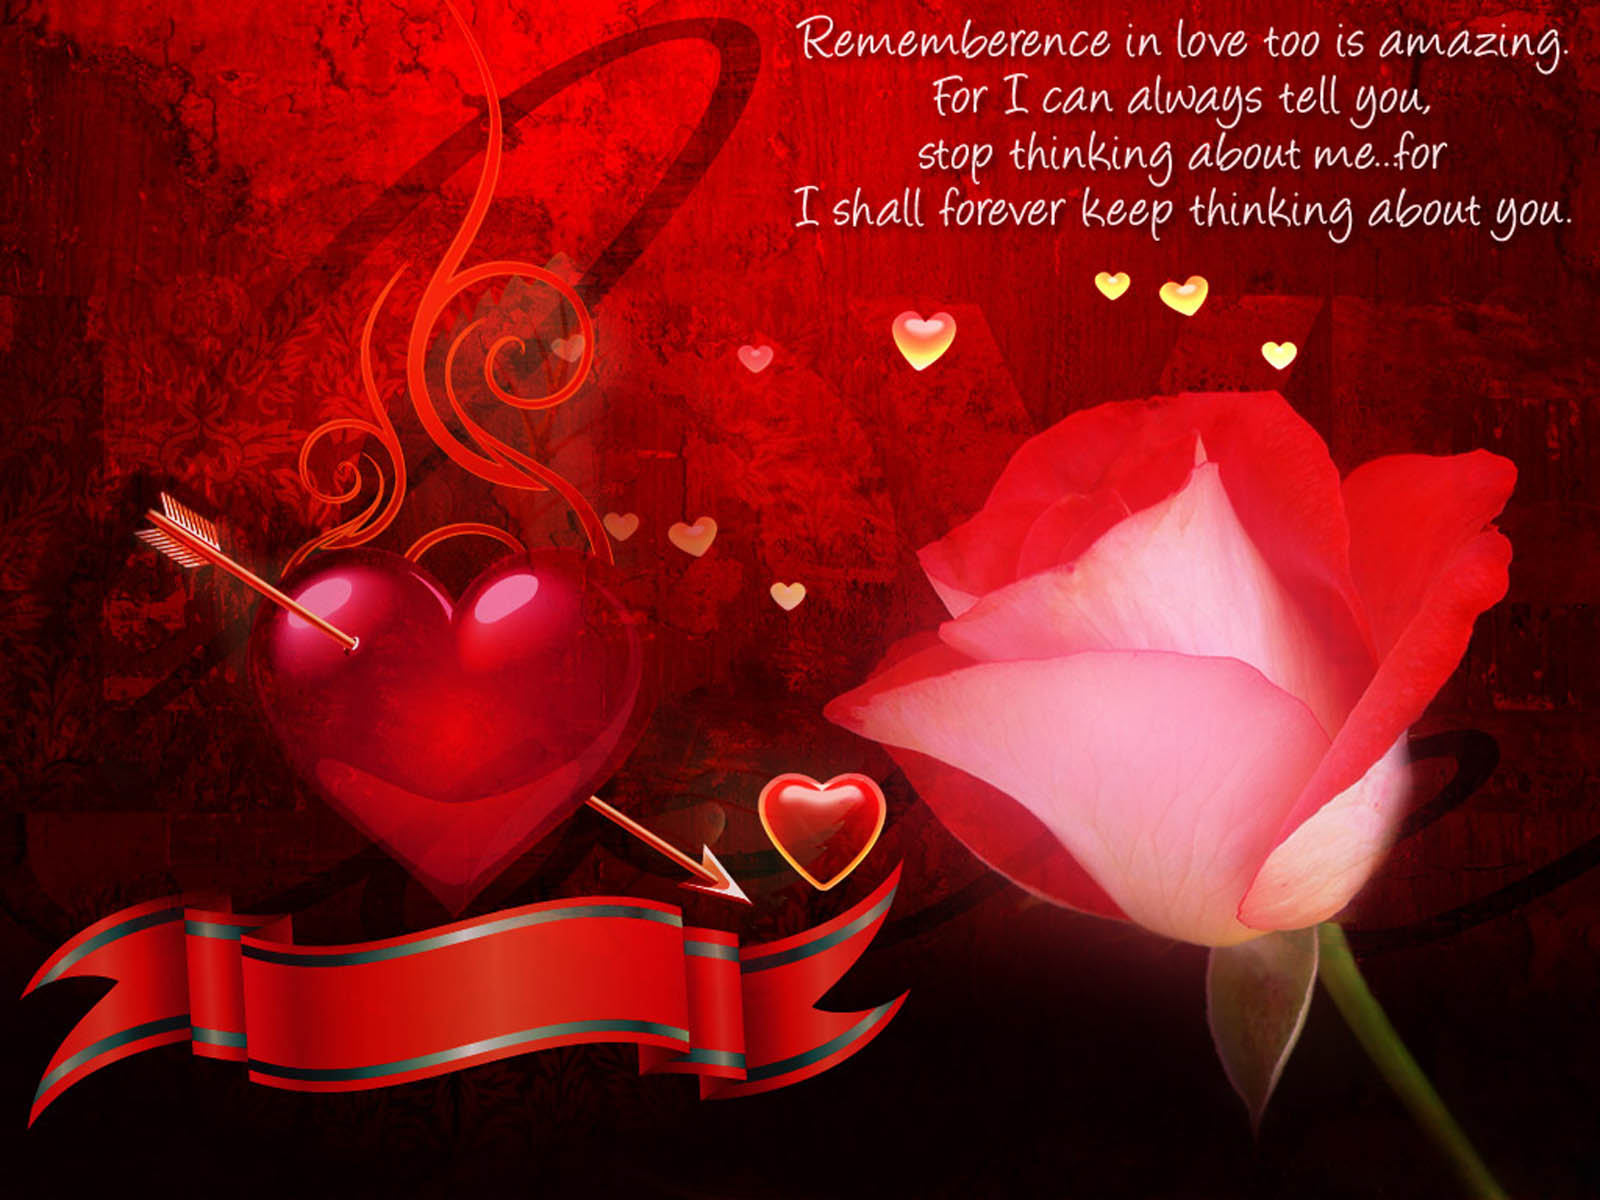 Beautiful Love Wallpaper For Desktop : wallpapers: Love Quotes Desktop Wallpapers